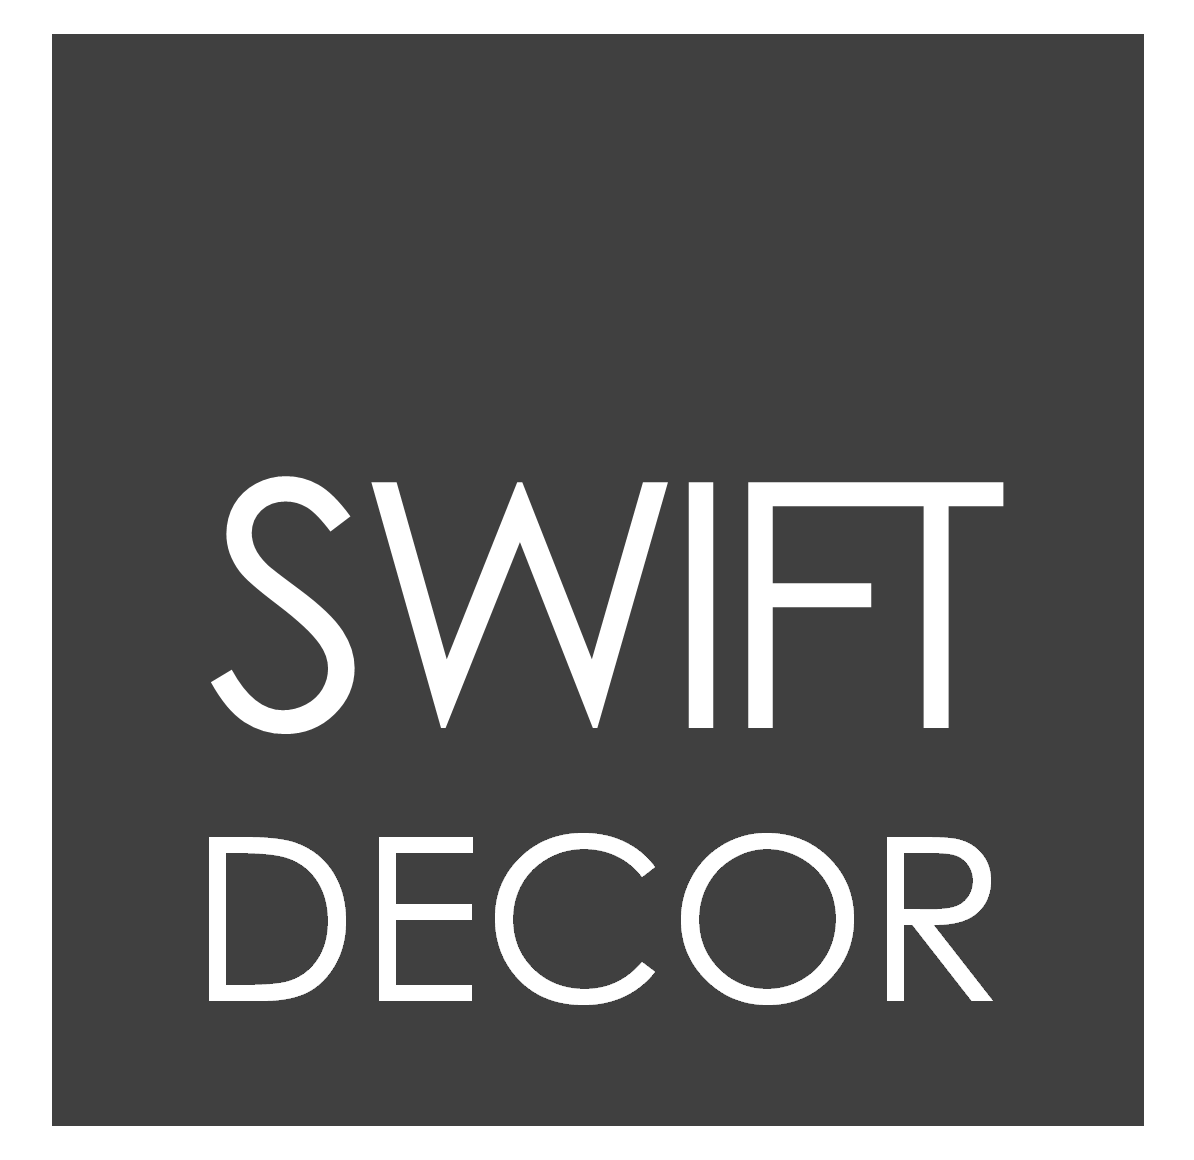 Swift Decor